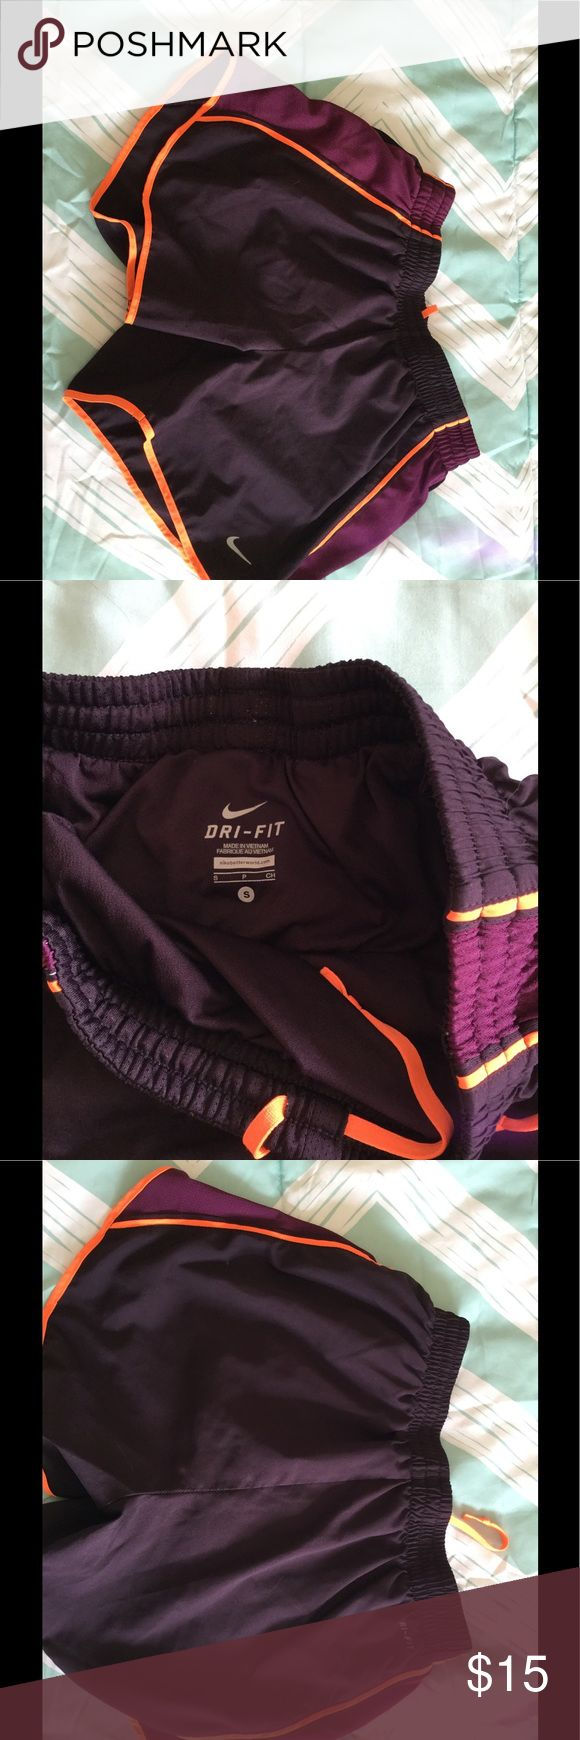 Nike Dri-Fit running shorts Nike Dri-Fit Running shorts, size small. Excellent condition, hardly worn. Have the mesh underwear inside. Nike Shorts